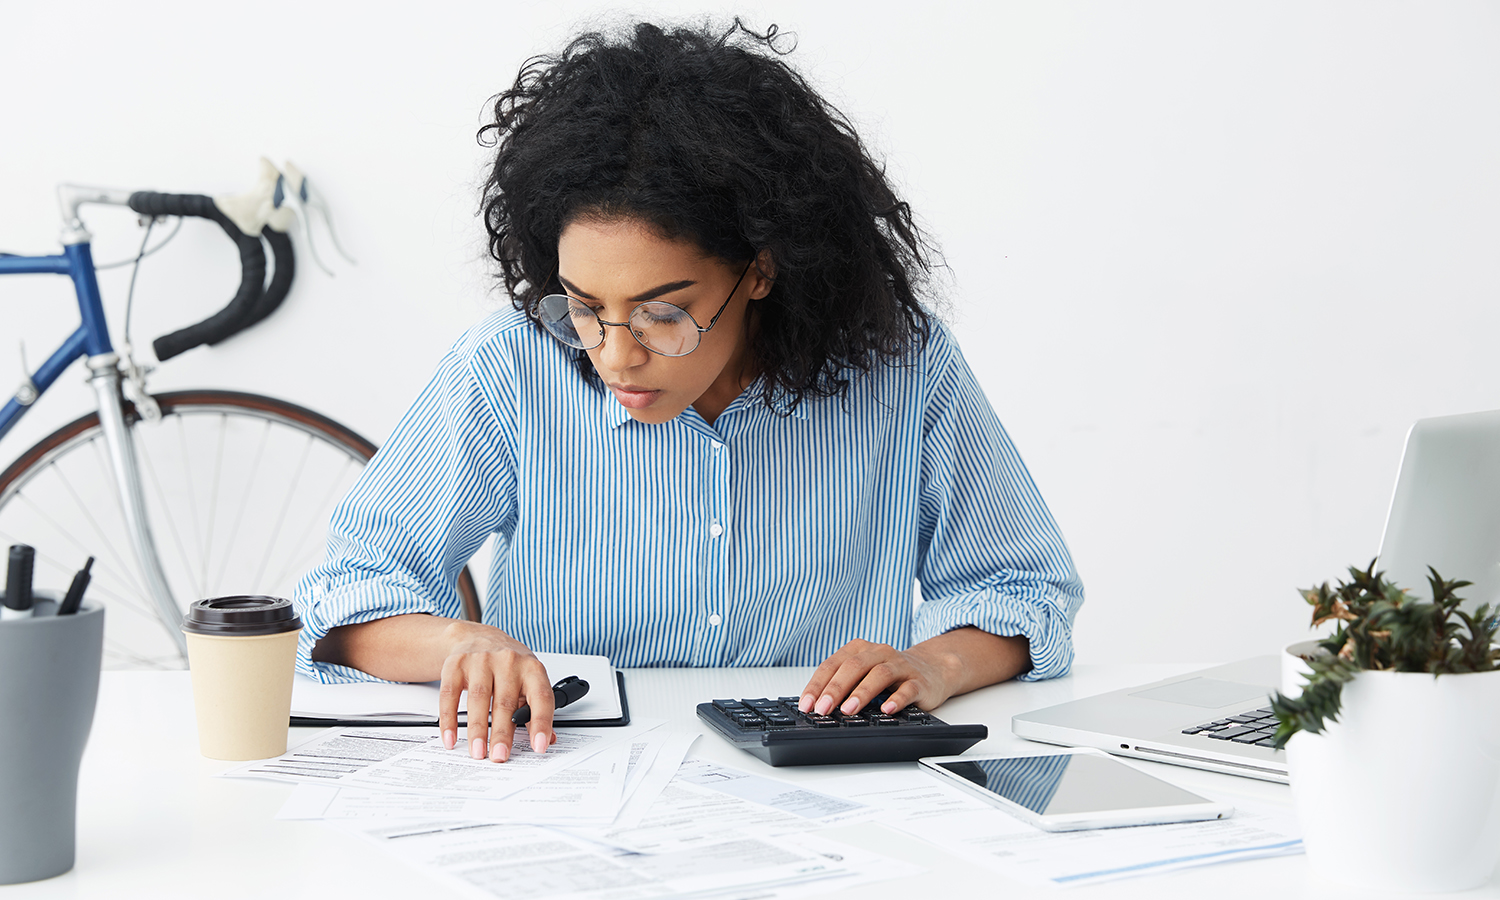 women calculating how much she has saved for a down payment